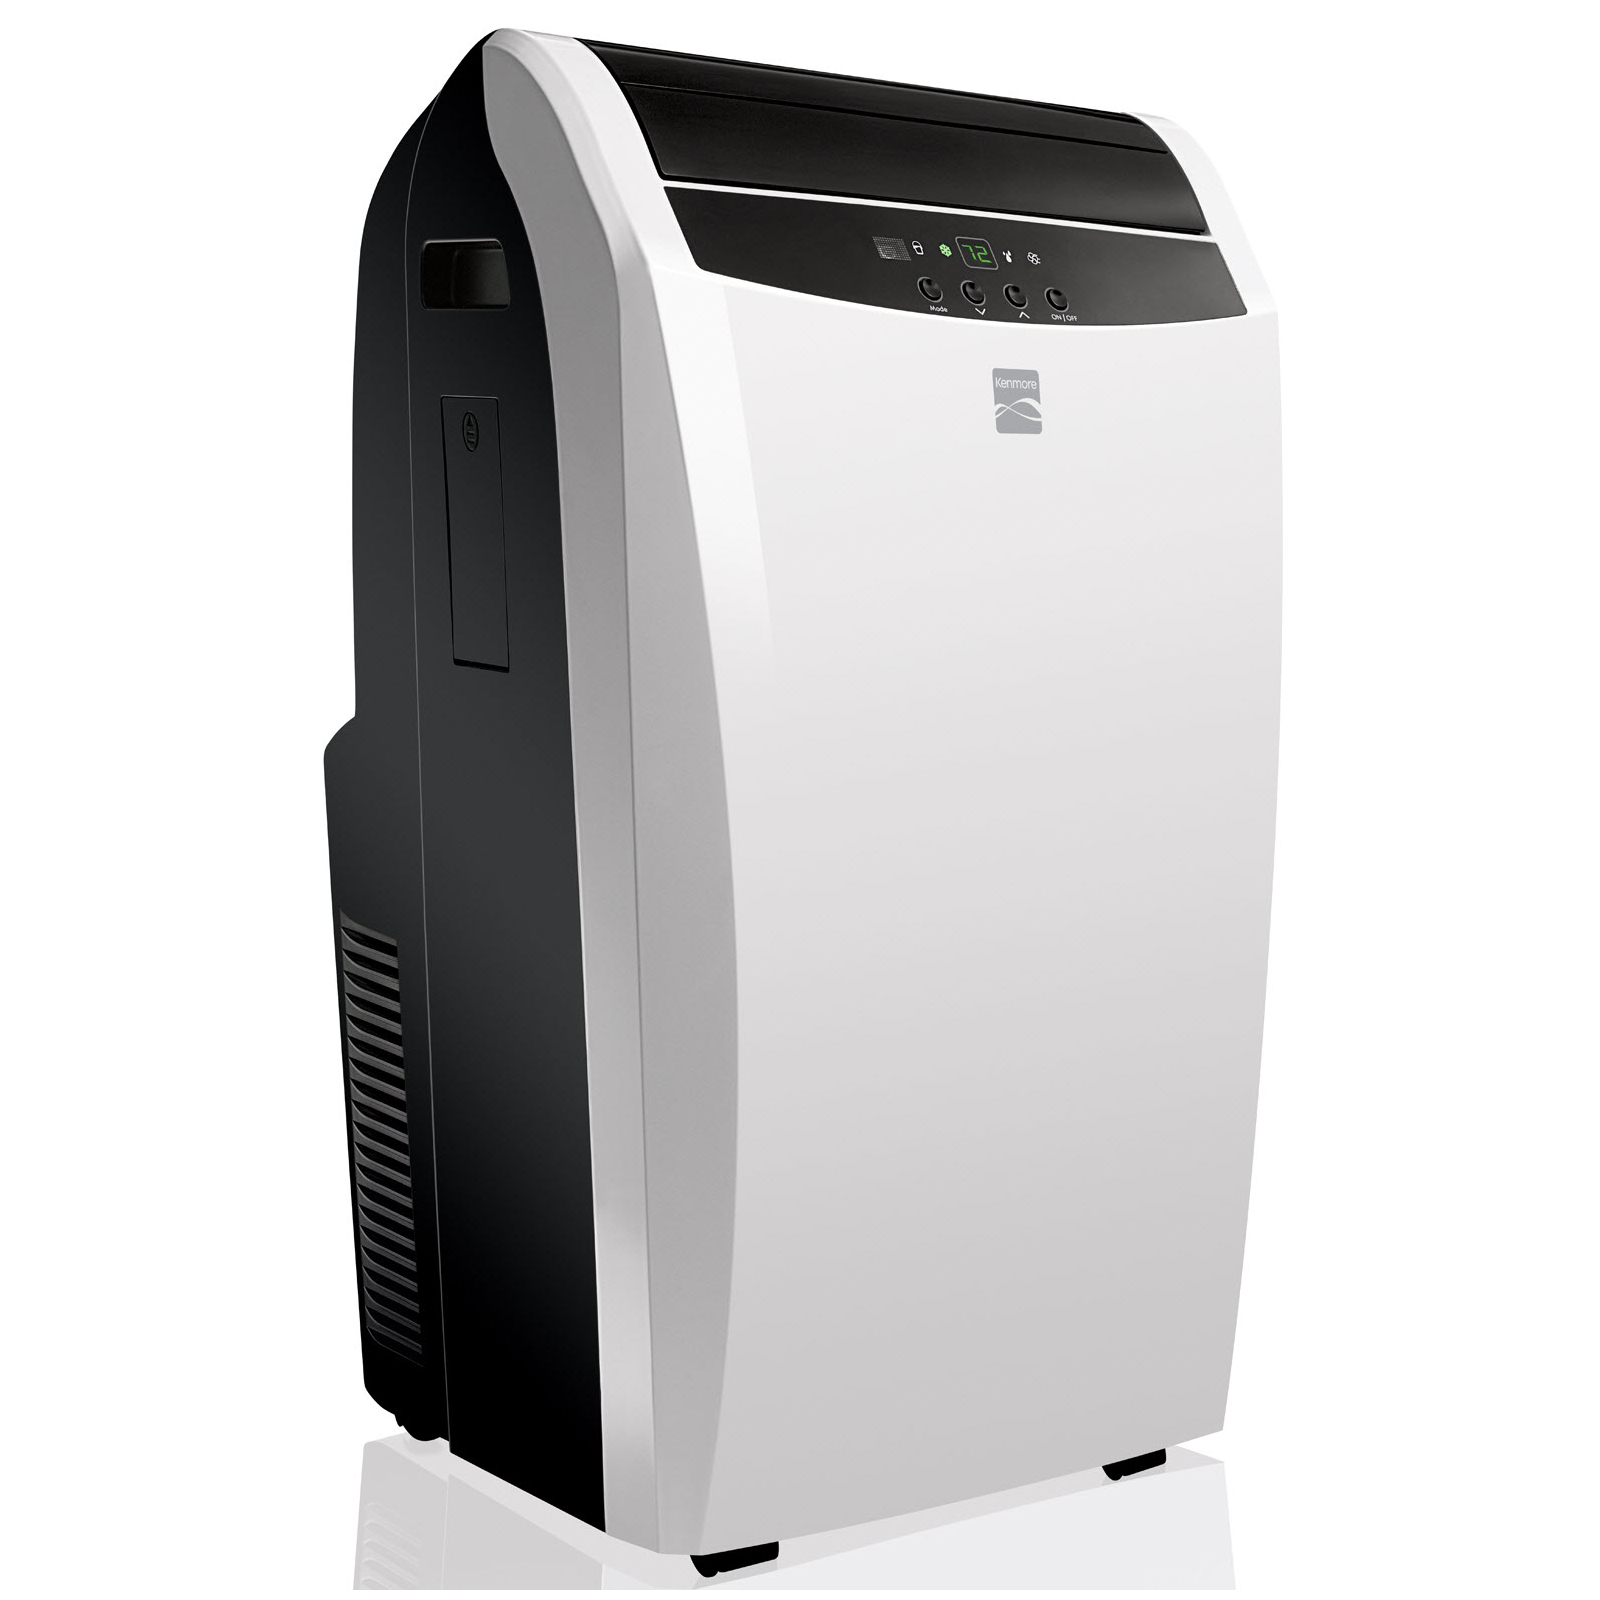 Portable Air Conditioner 12000 Btu Kenmore Portable Air Conditioner 12 000 Btu Shop Your